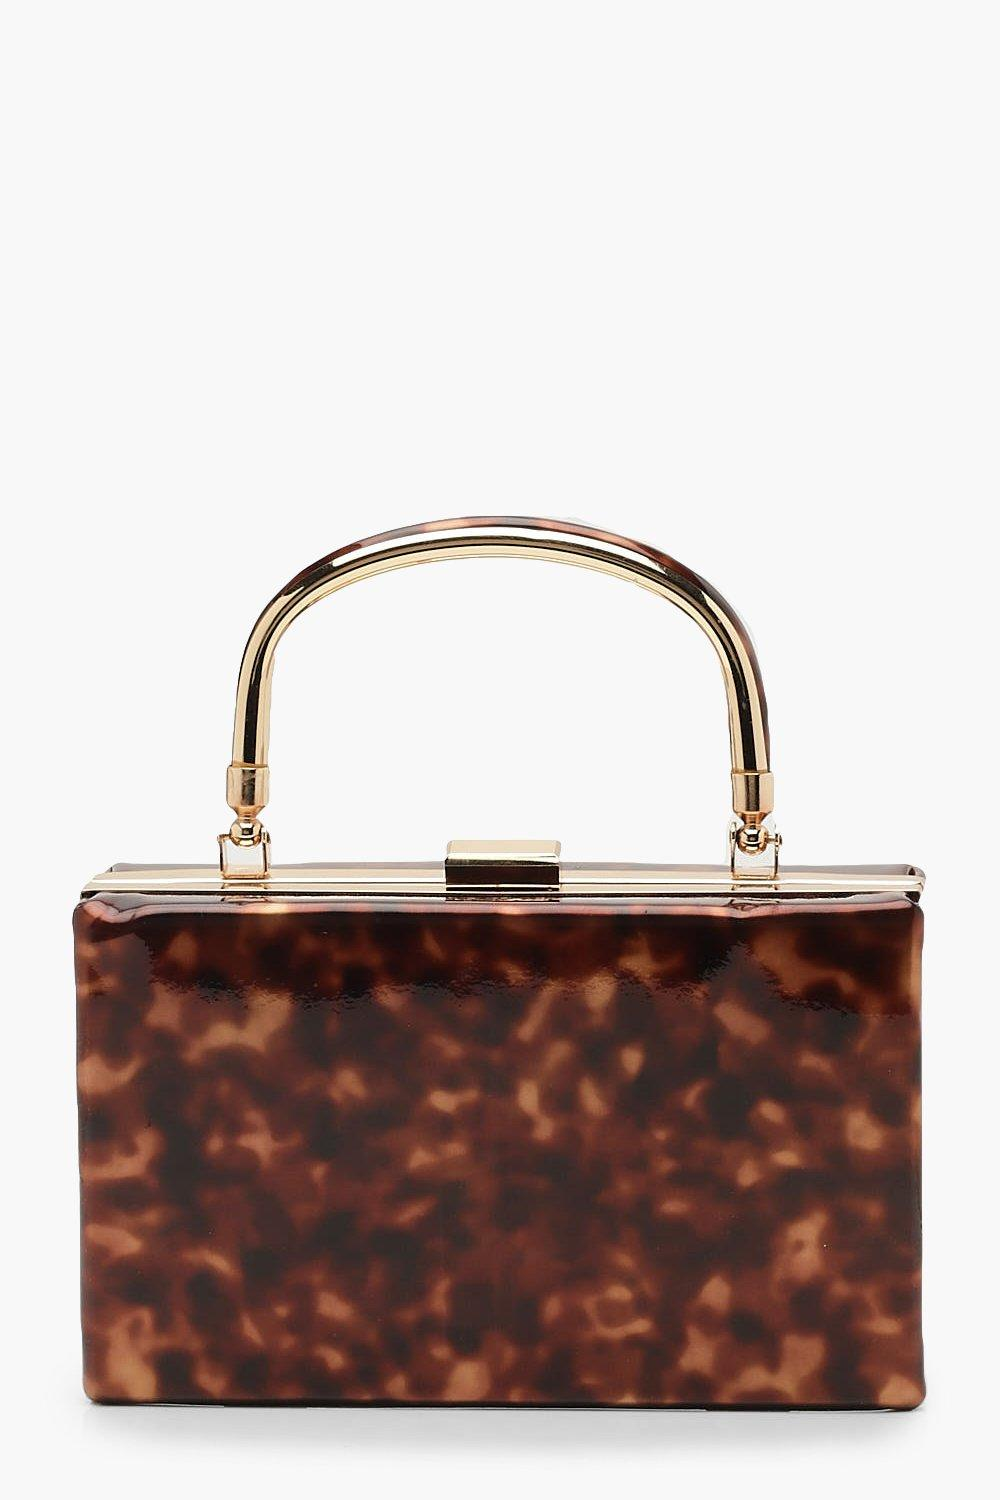 boohoo Womens Resin Effect Box Clutch Bag With Handle - Brown - One Size, Brown